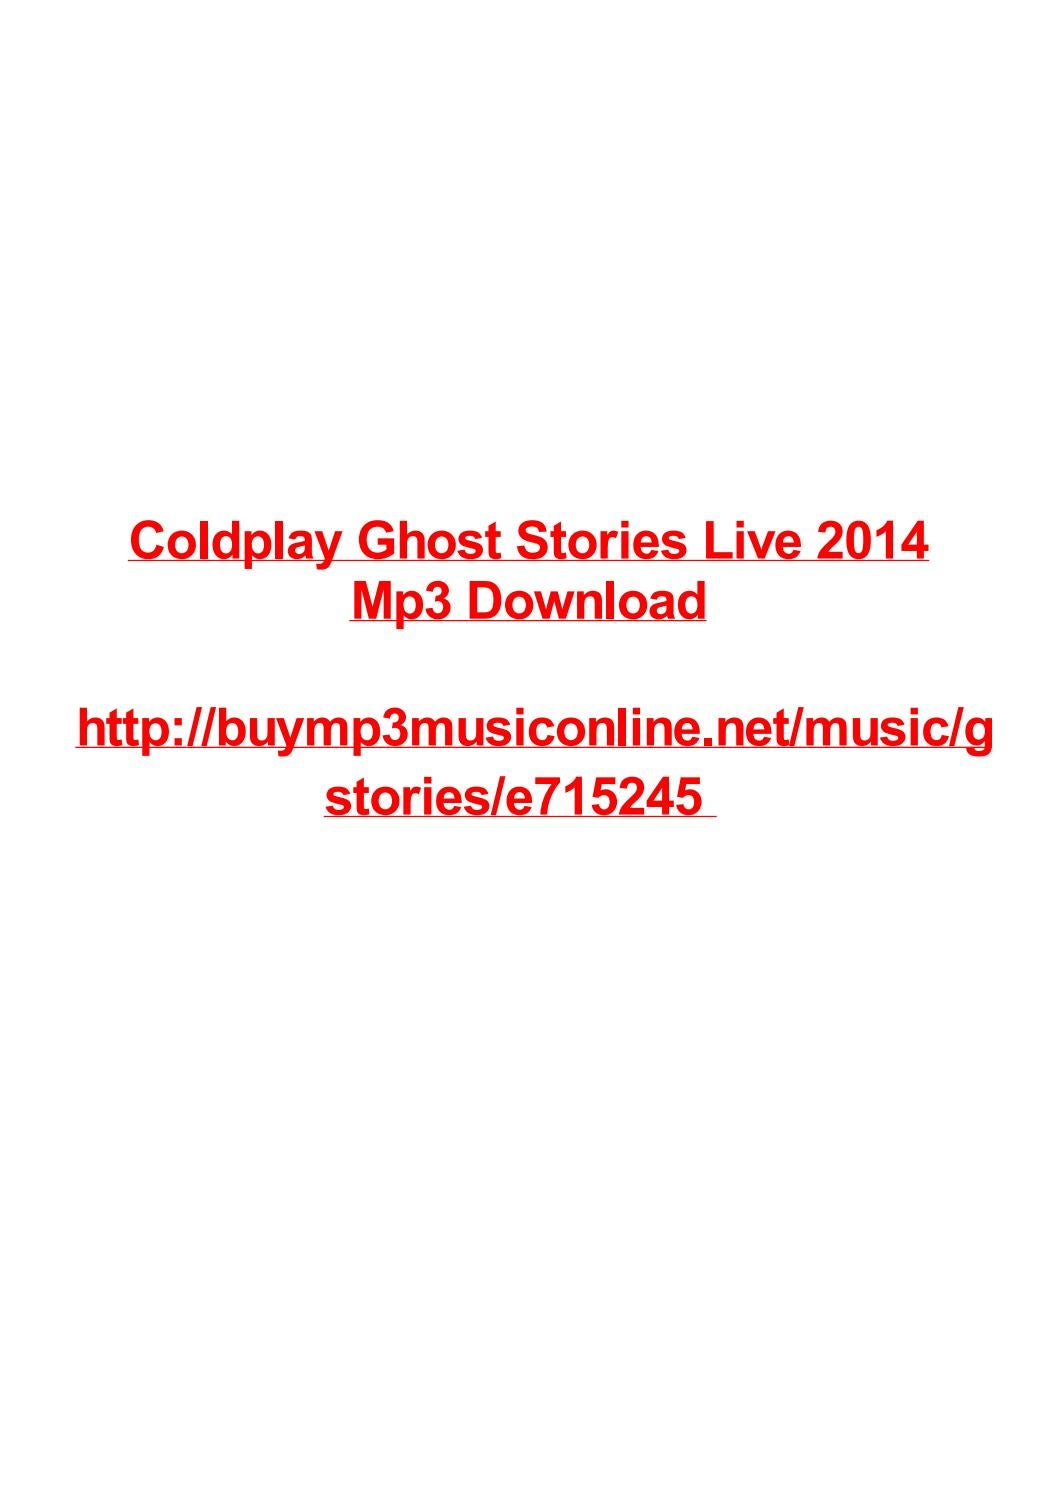 Coldplay ghost stories live 2014 mp3 download by Max Polansky - issuu